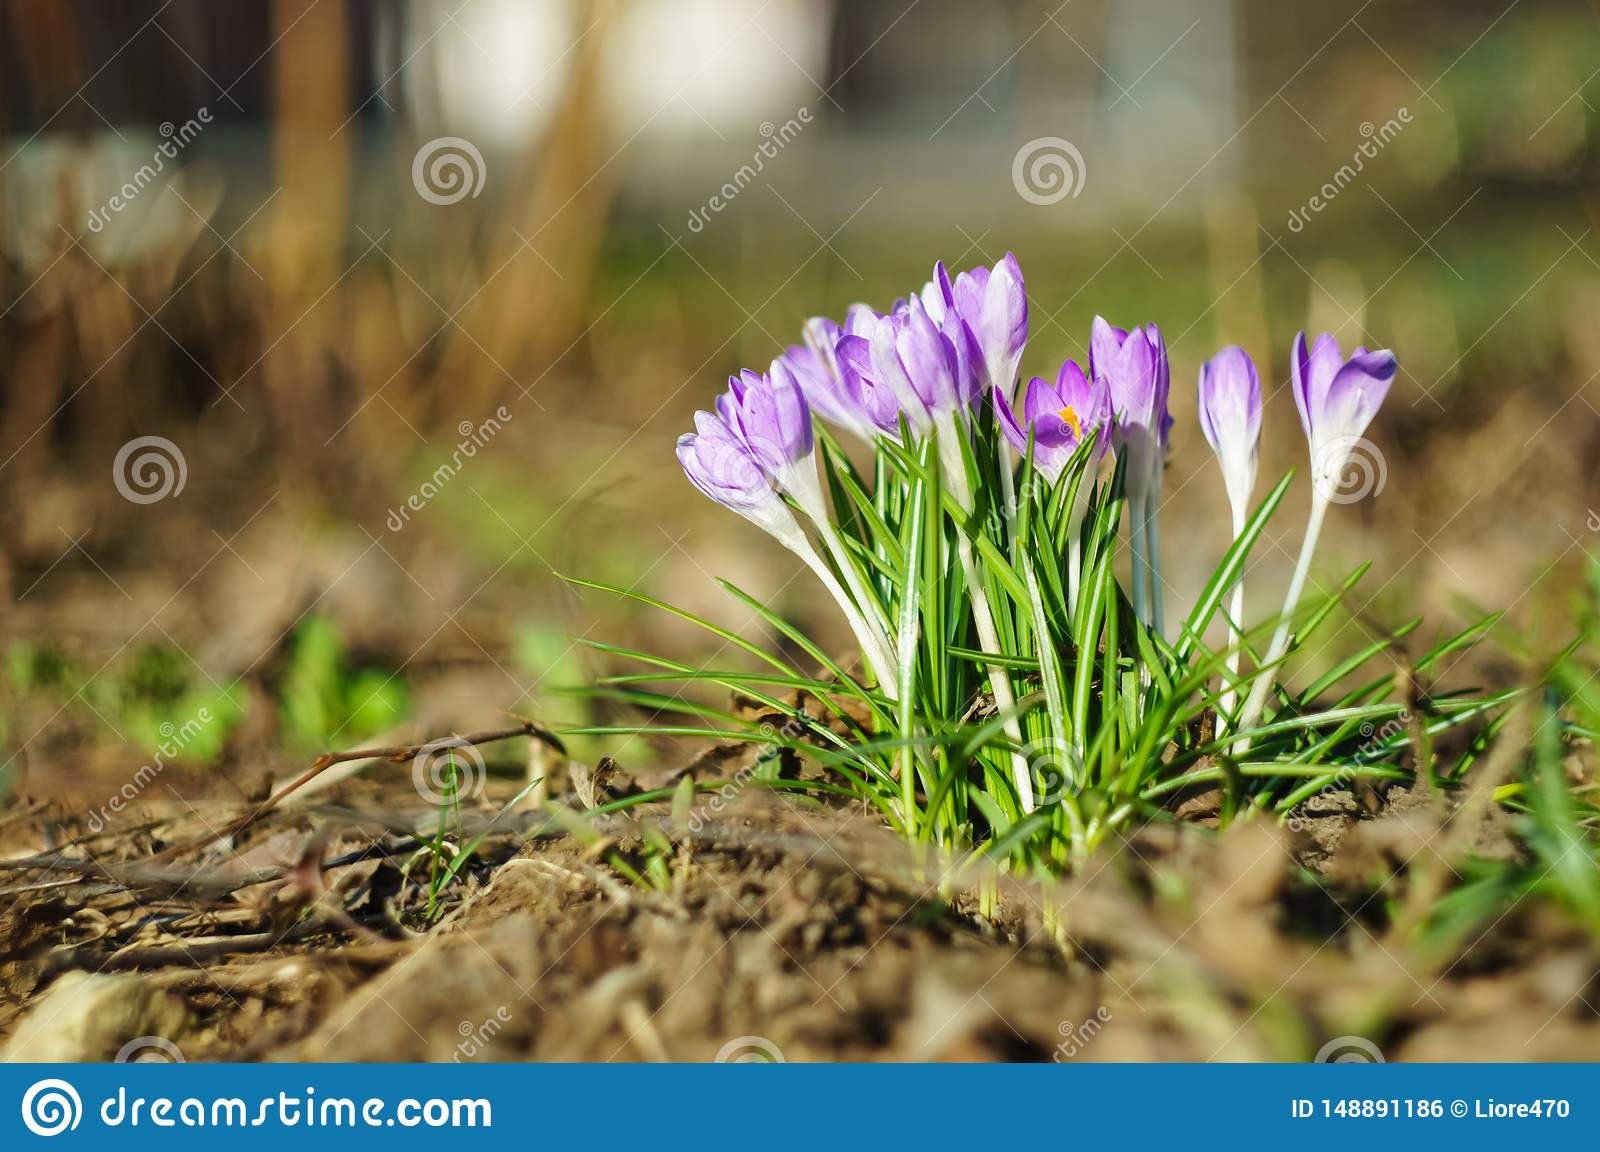 Crocus flowers in early spring on a blurred background. Soft focus. Selected focus